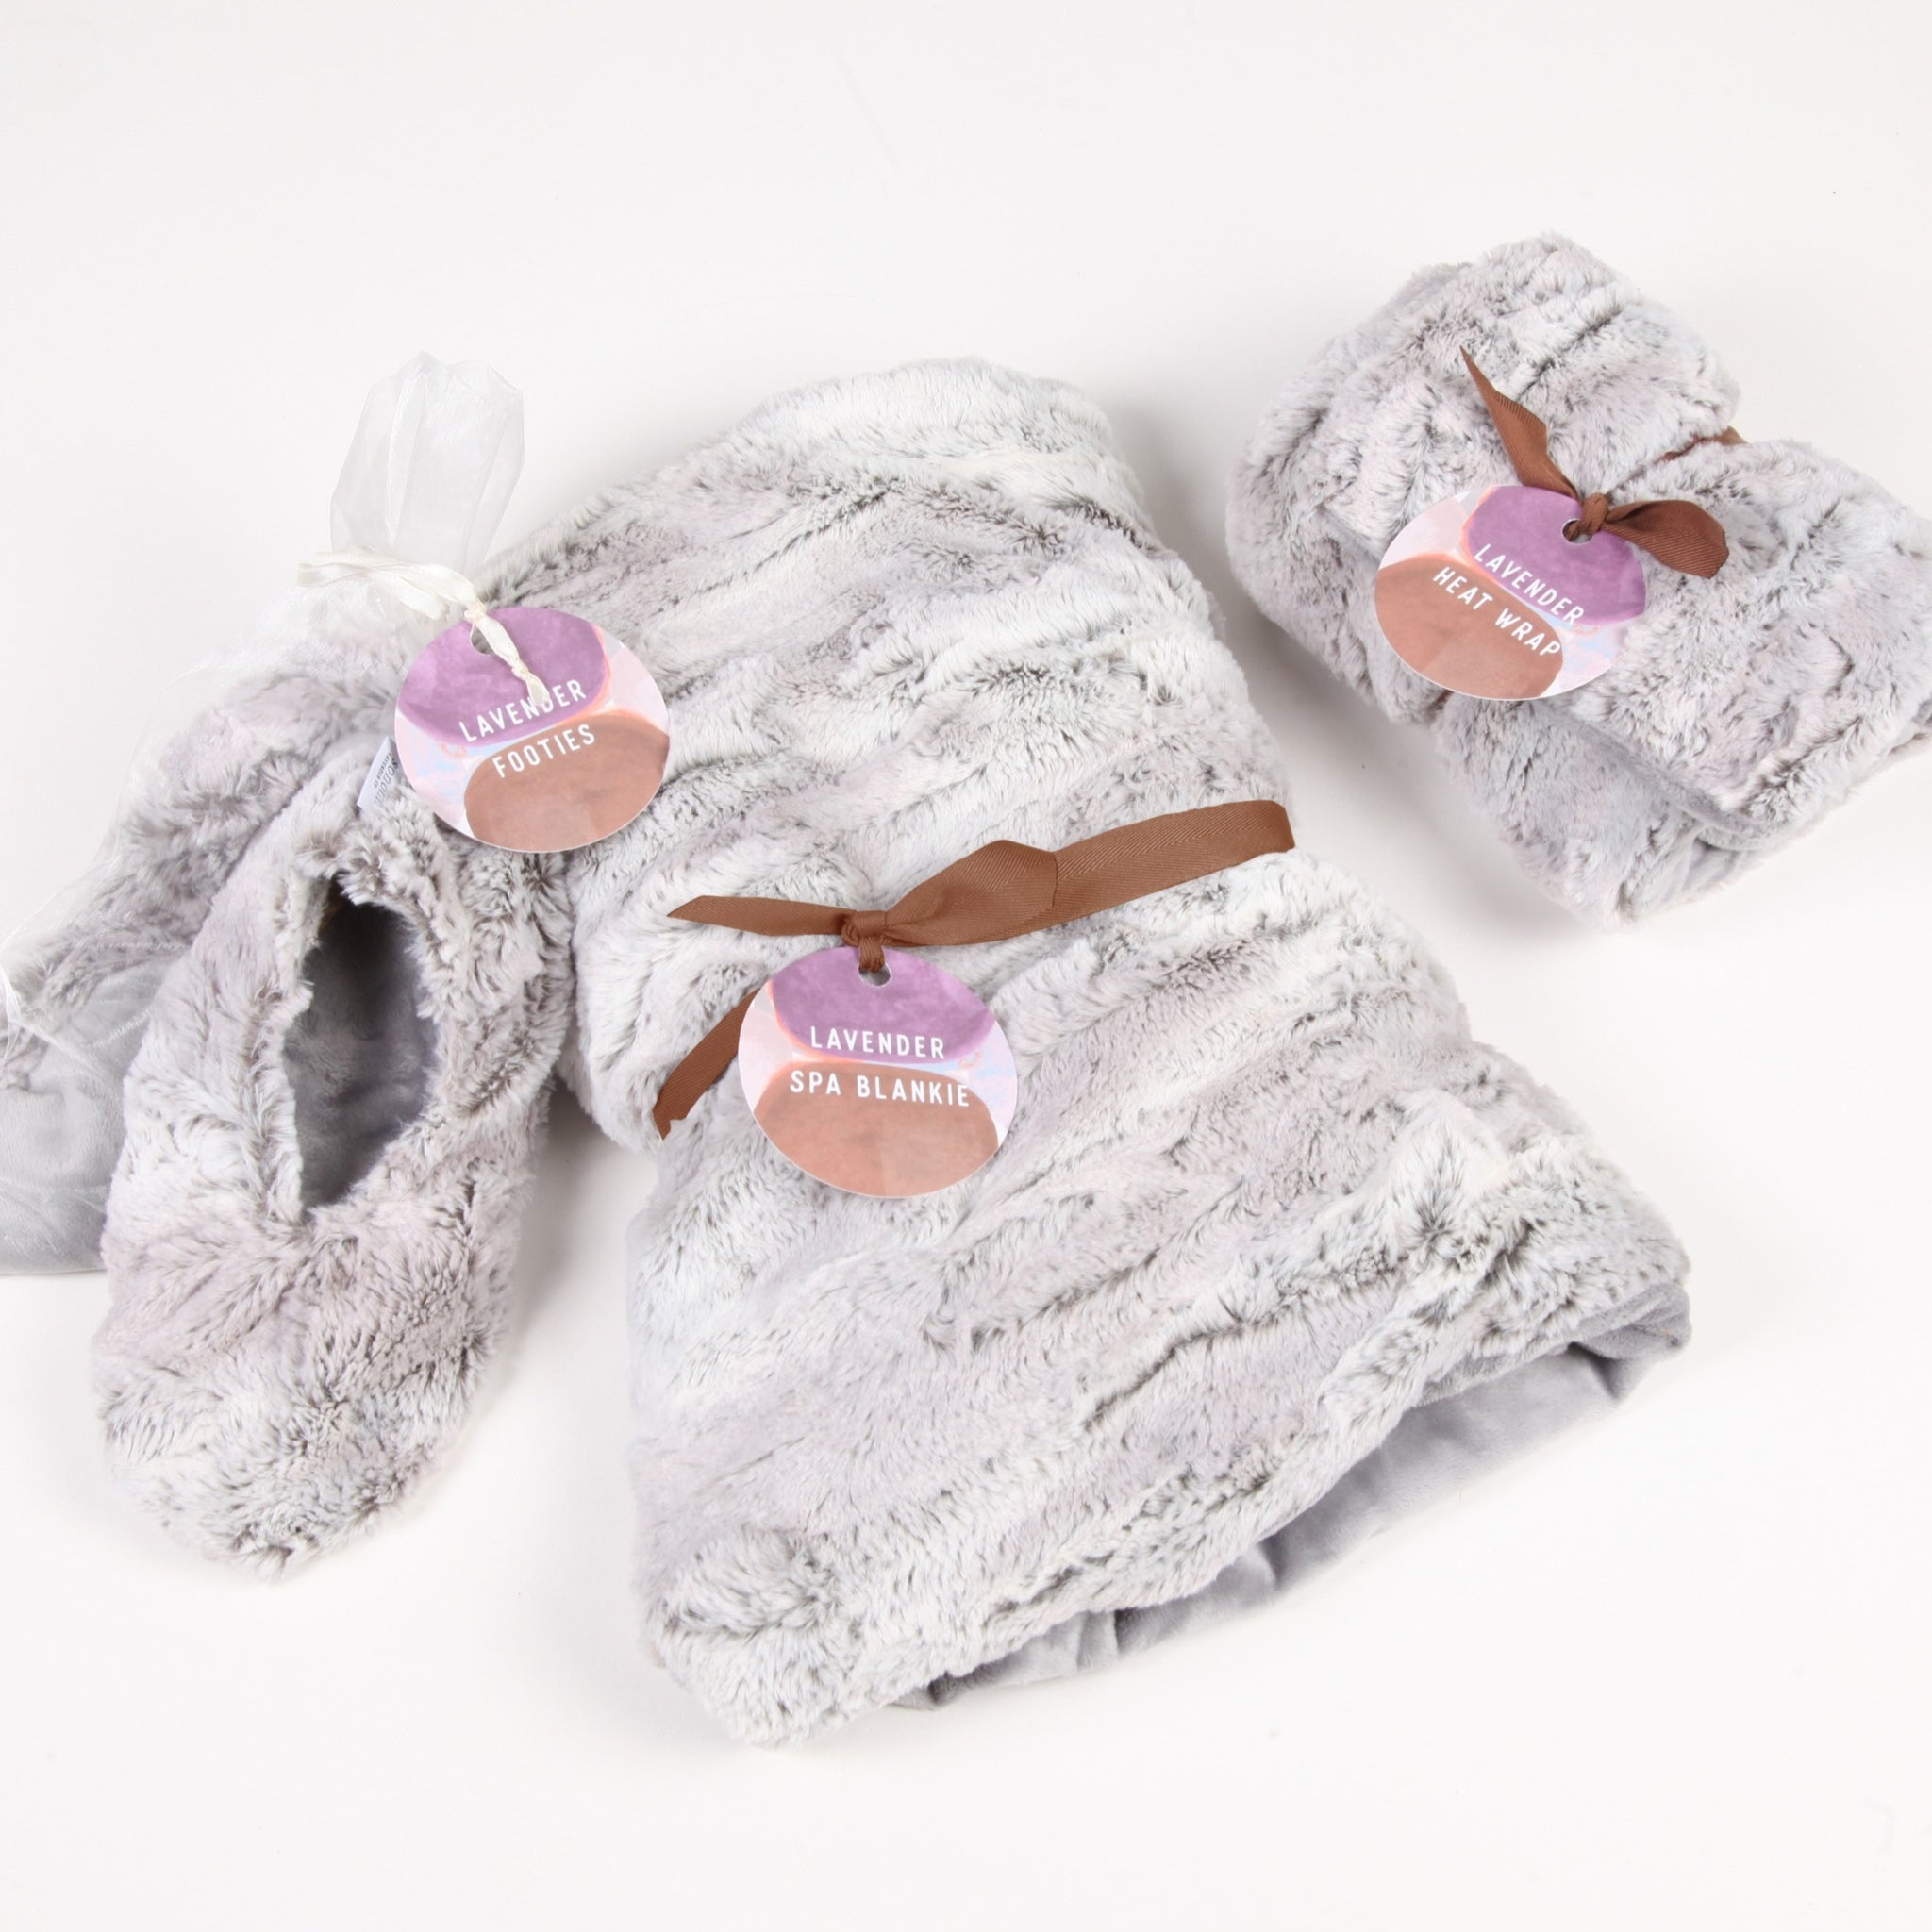 Silver Heatable Lavender Spa Collection